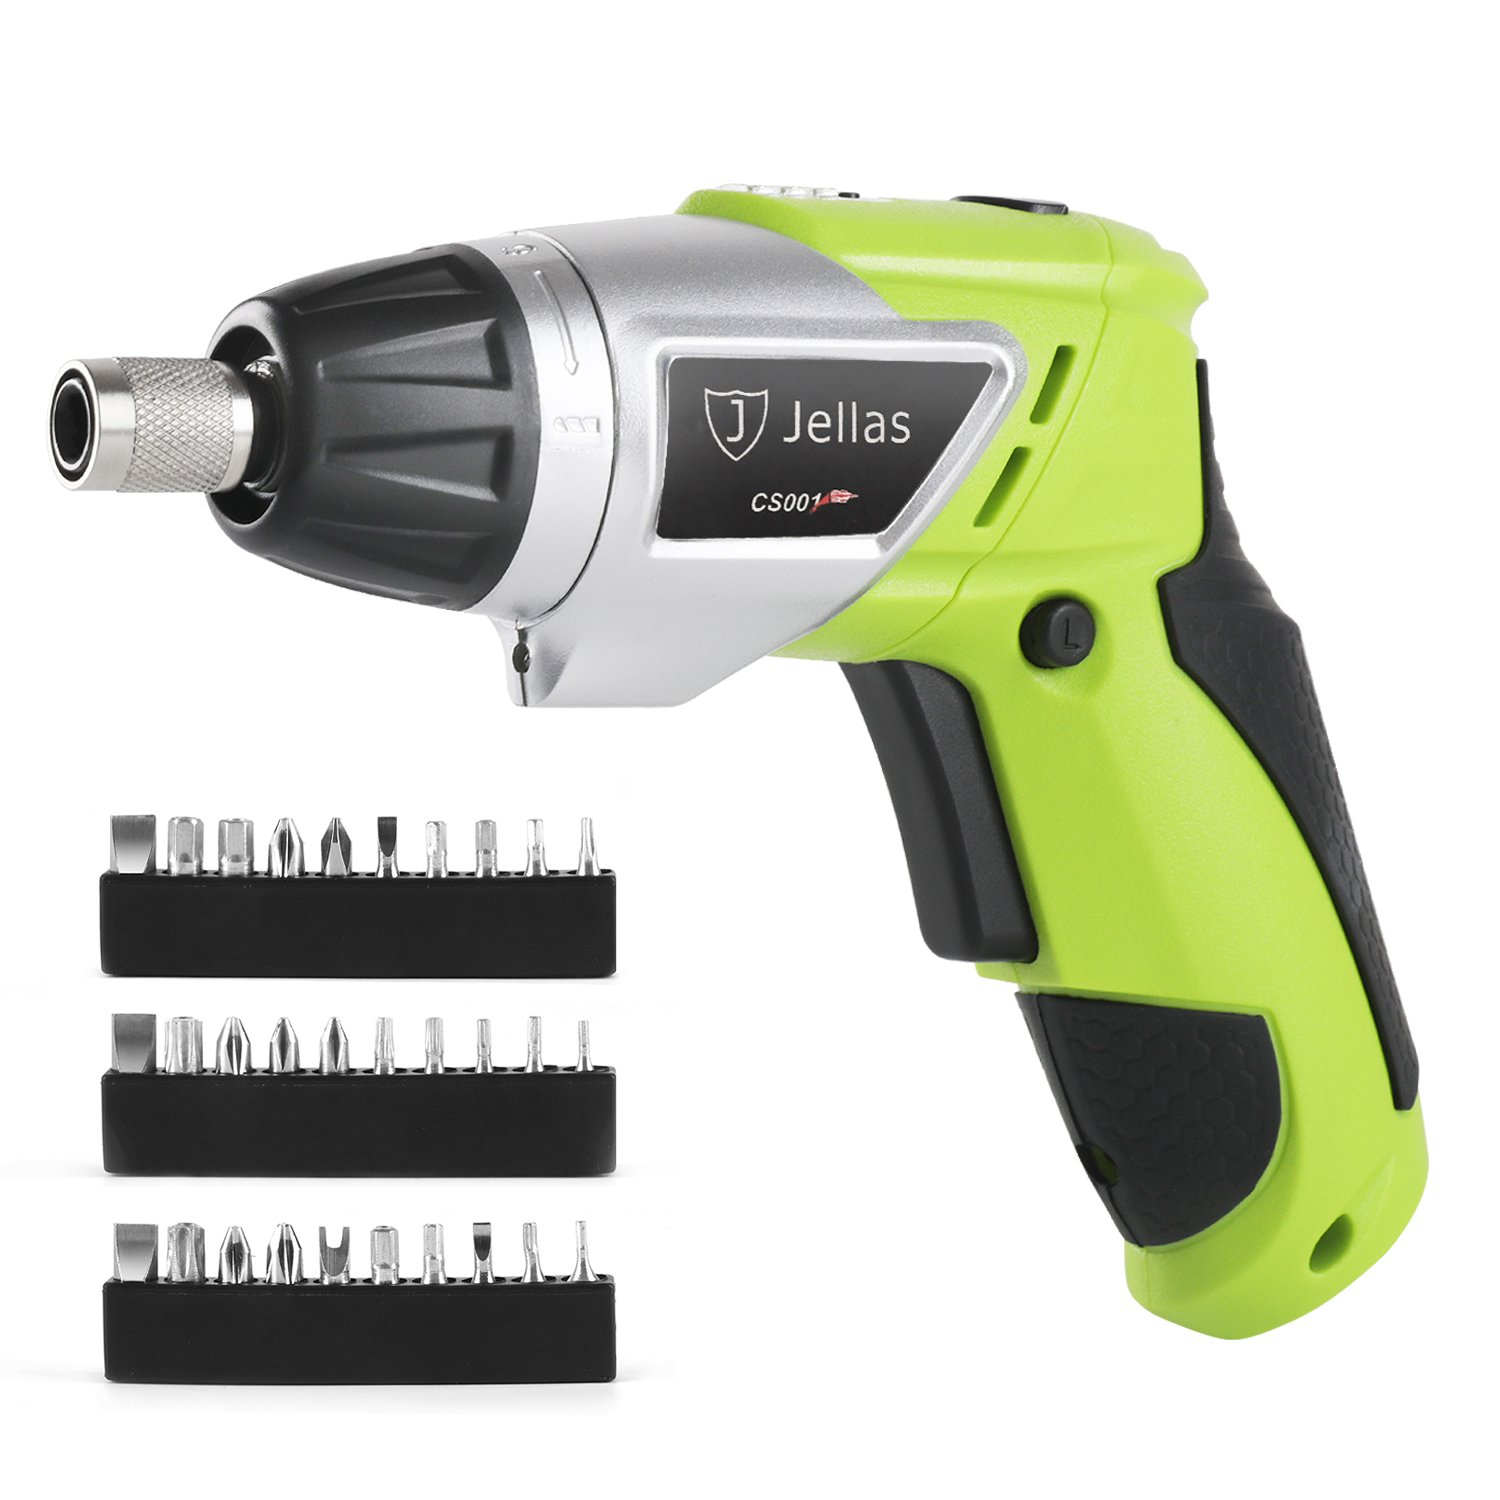 Jellas CS001 Cordless Screwdriver 3.6V/2000mAh Rechargeable Electric Drill with 6+1 Torque Settings for Around Home Small Jobs, 30 PCS Driver Bits and Extension Bit Holder Included.